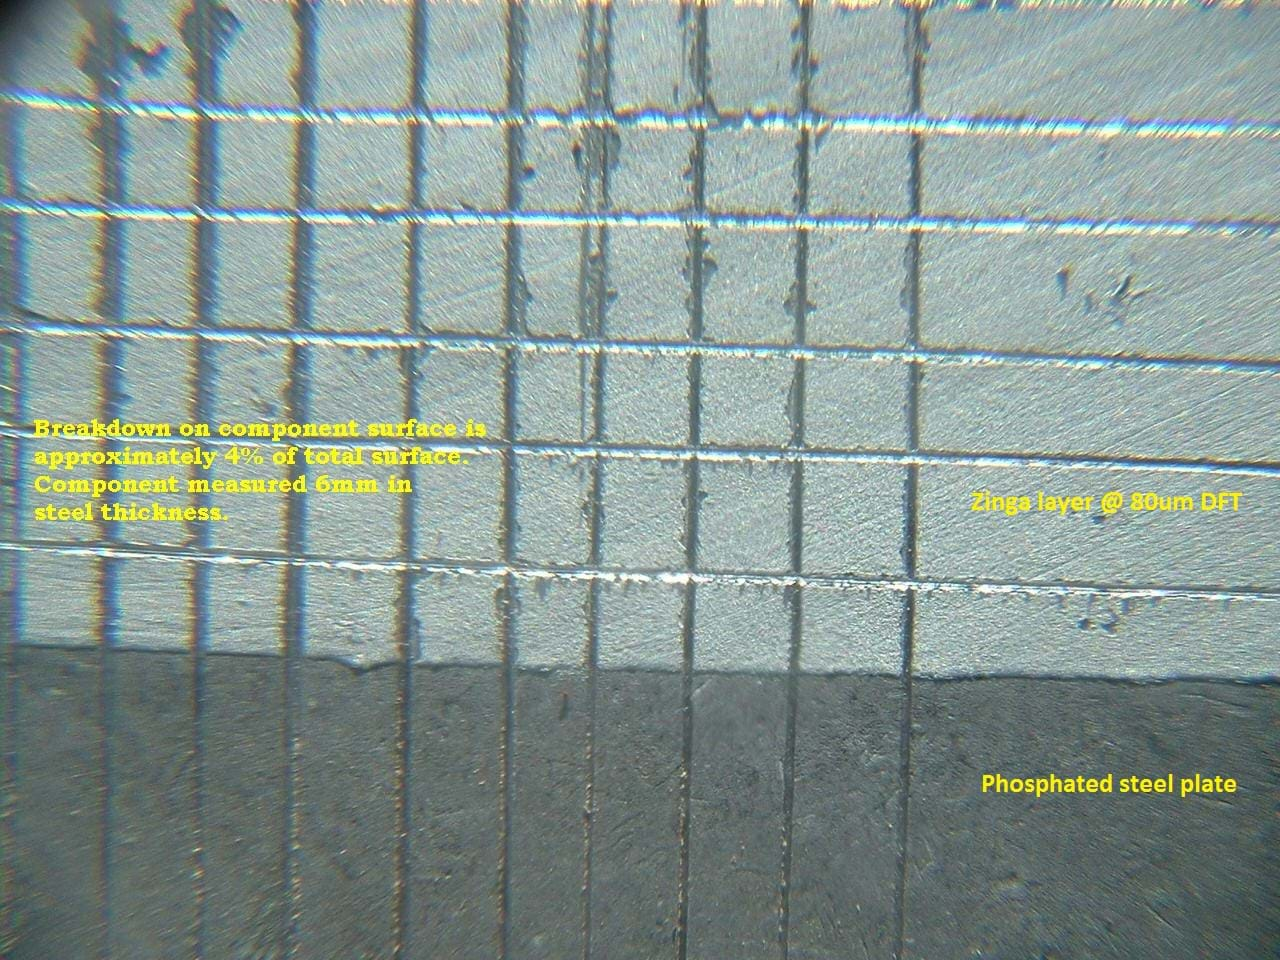 The image shows a phosphated steel plate that has been test with and without zinga